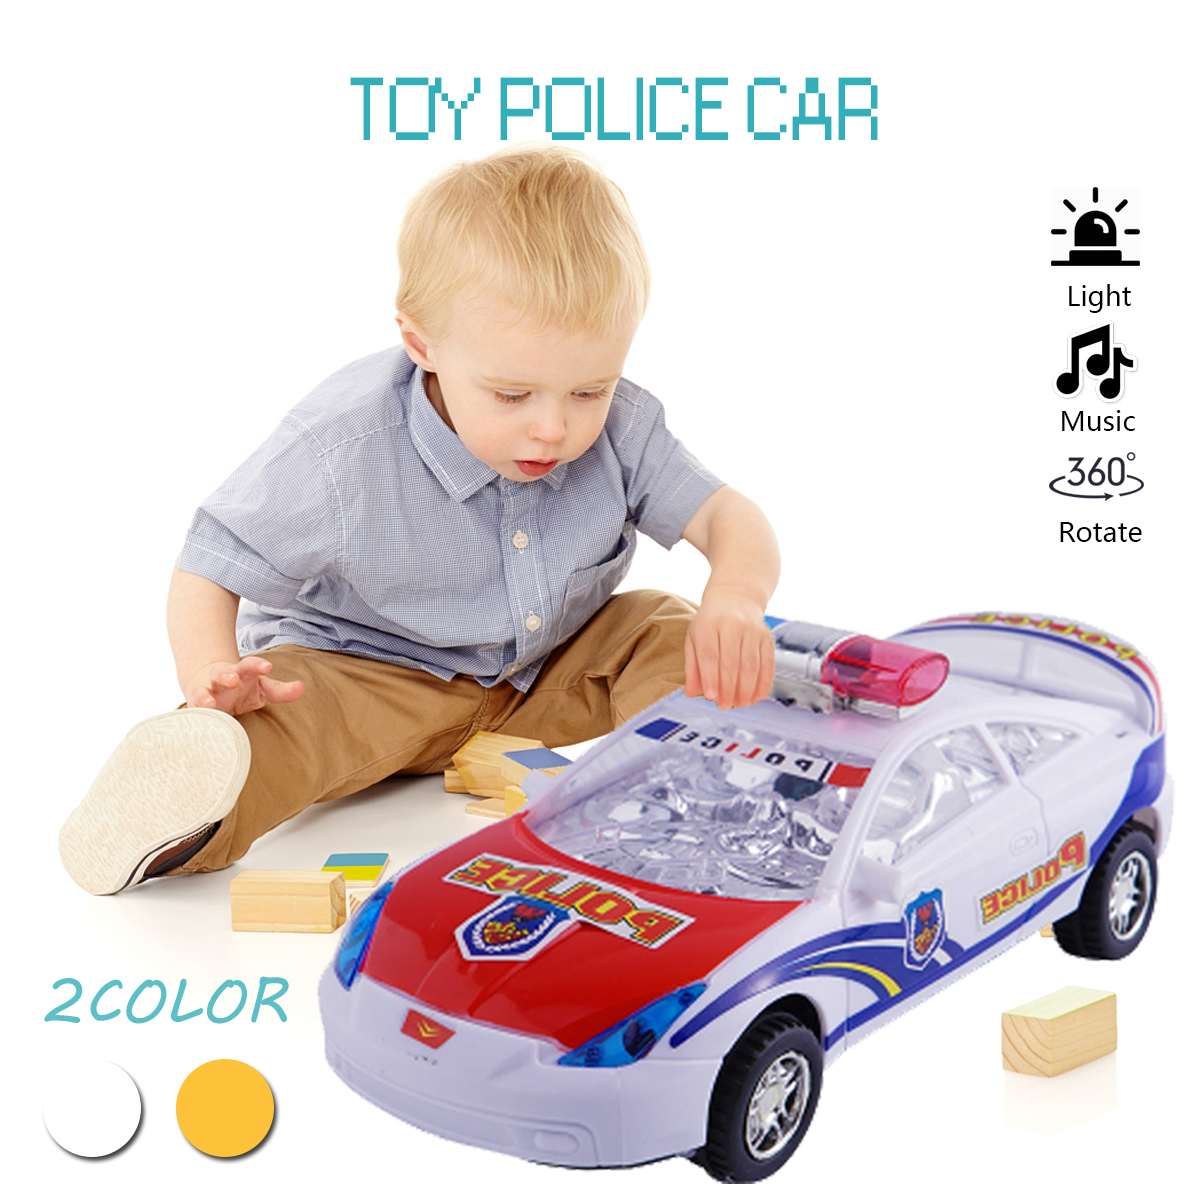 Leds Black Magics LED Car Toys With Flashing Lights Glowing Polices Car Educational Toys Boys Girls Birthday Gift Kids Toys